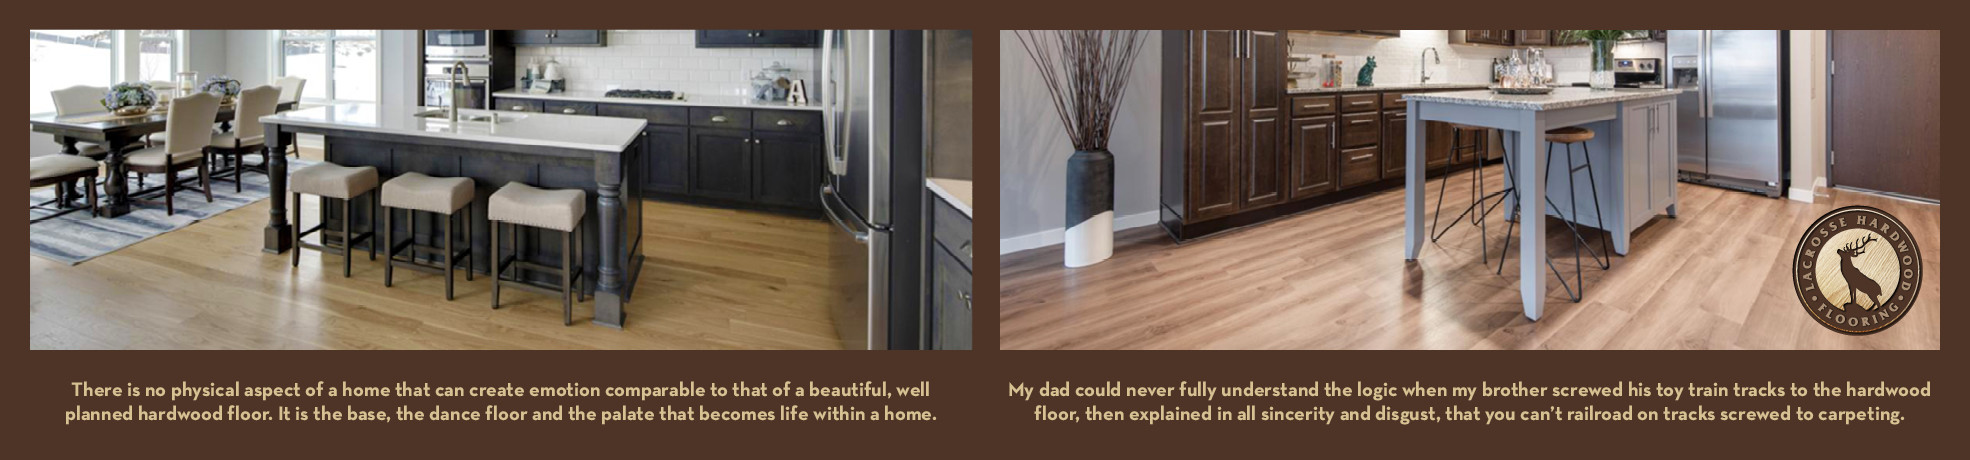 Hardwood Floor Vs Tile Of Lacrosse Hardwood Flooring Walnut White Oak Red Oak Hickory Inside Lhfsliderv24